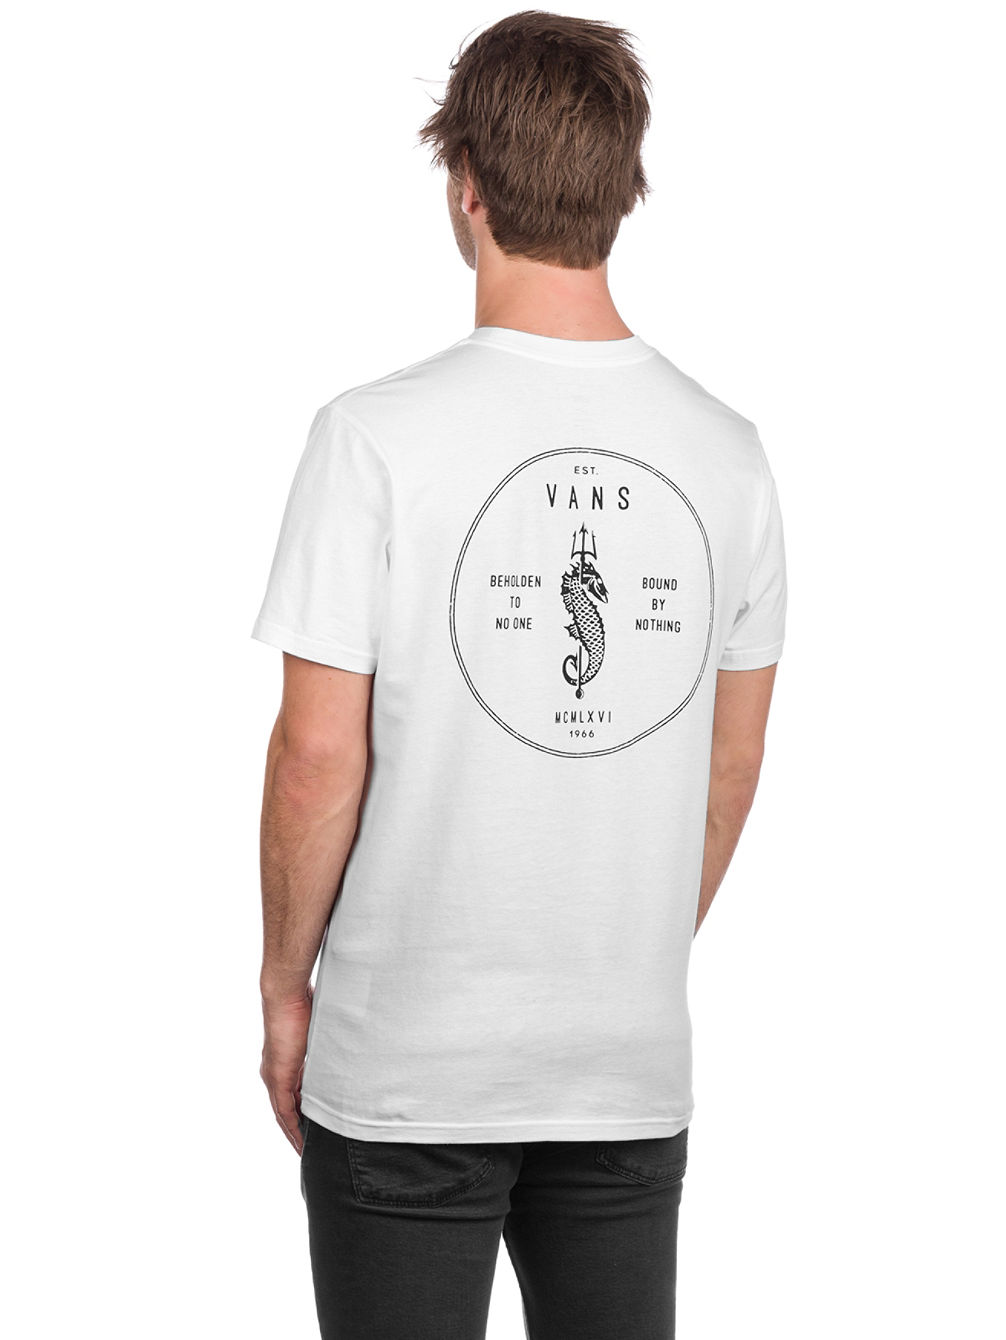 67525fd17c1605 Buy Vans Bound By Nothing Pocket T-Shirt online at Blue Tomato